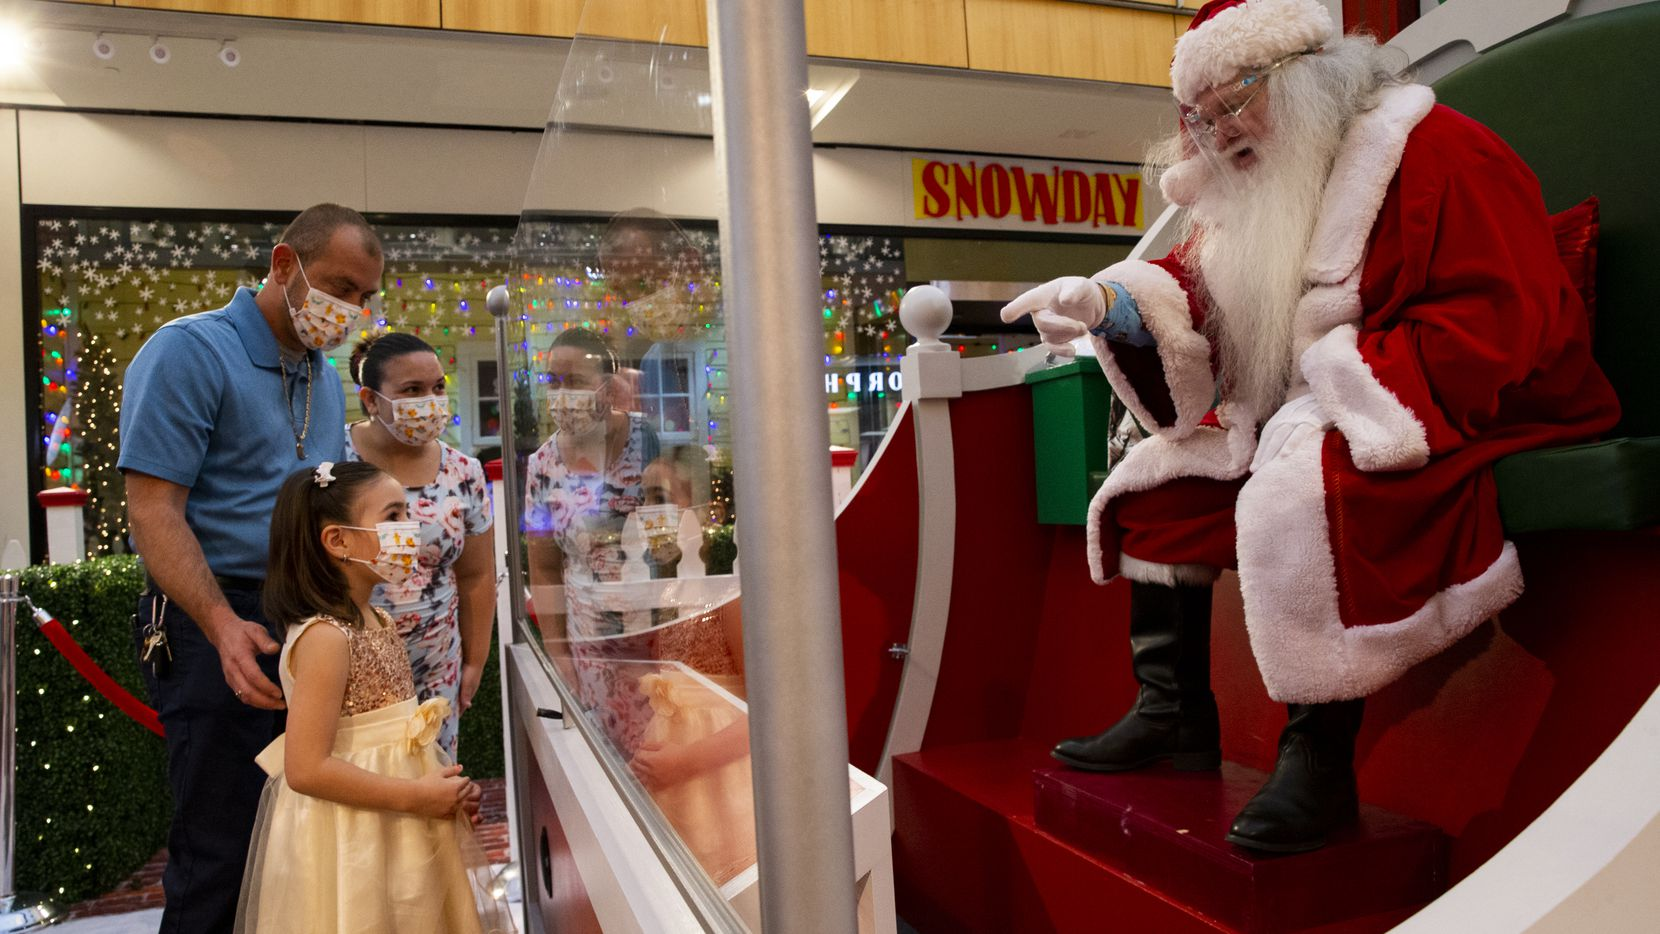 Aryana Martinez, 5, visits Santa Claus with dad Jaime Martinez and mom Shaila Martinez while at the Galleria in Dallas on Sunday, Martinez couldn't remember what she asked Santa for Christmas but said it was good to see him.